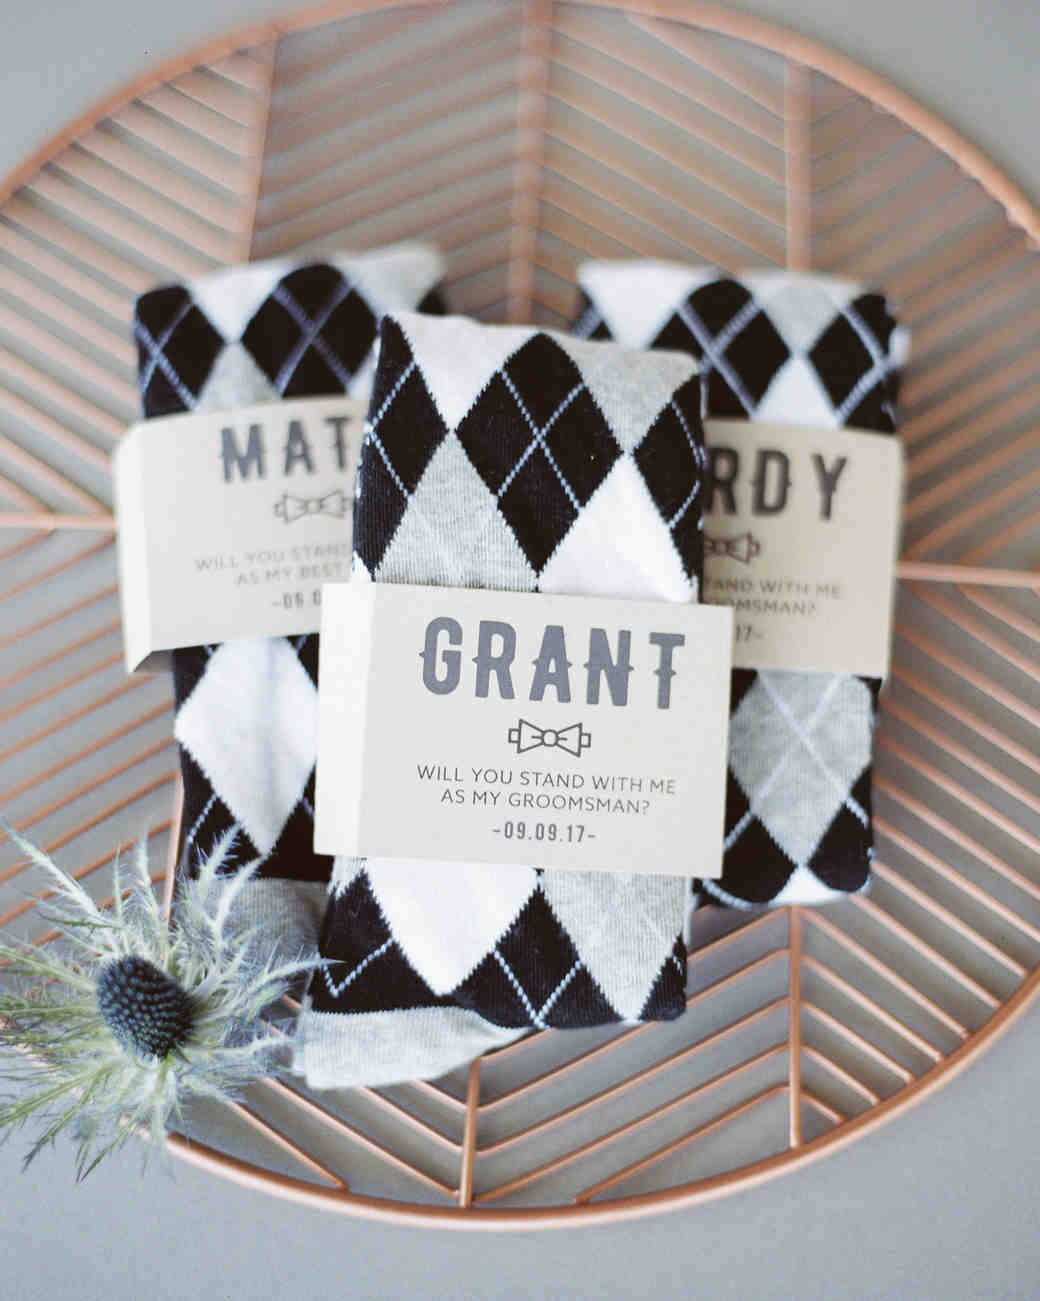 cool groom accessories argyle socks personalized labels